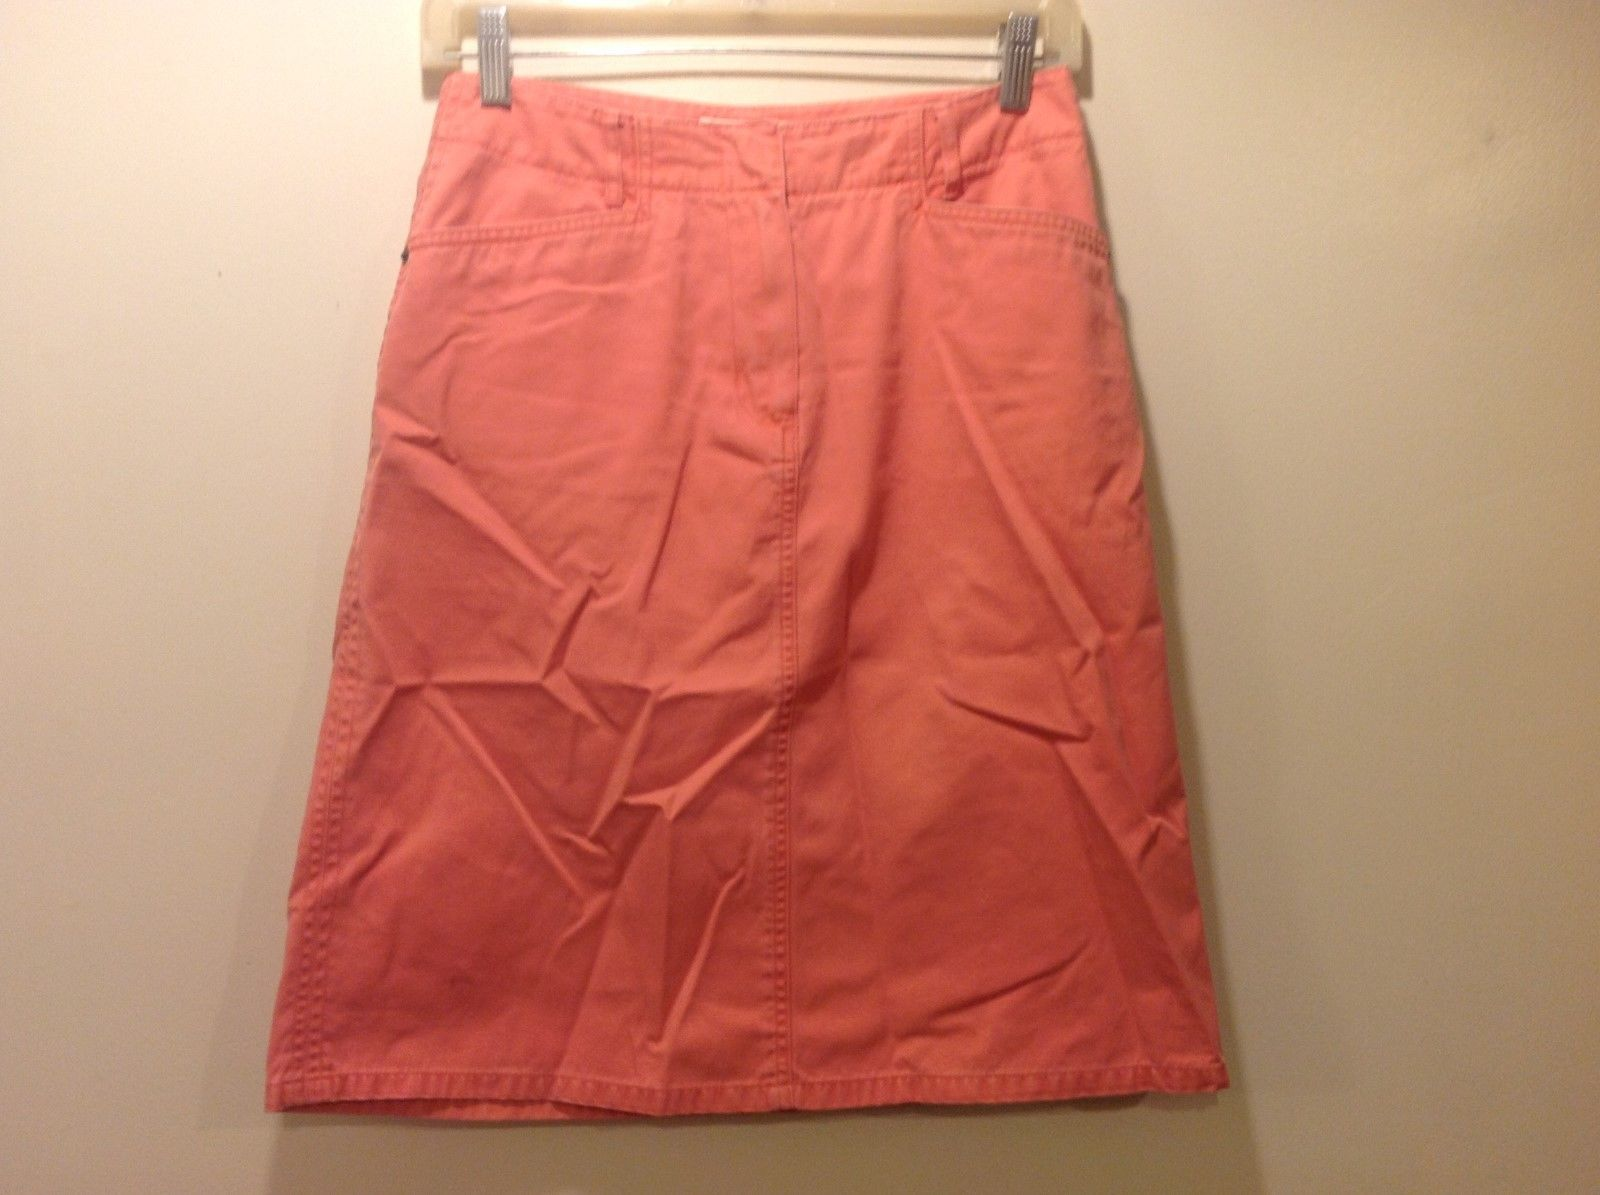 Talbots Petite Light Orange/Salmon Med Weight Denim Skirt Sz 4